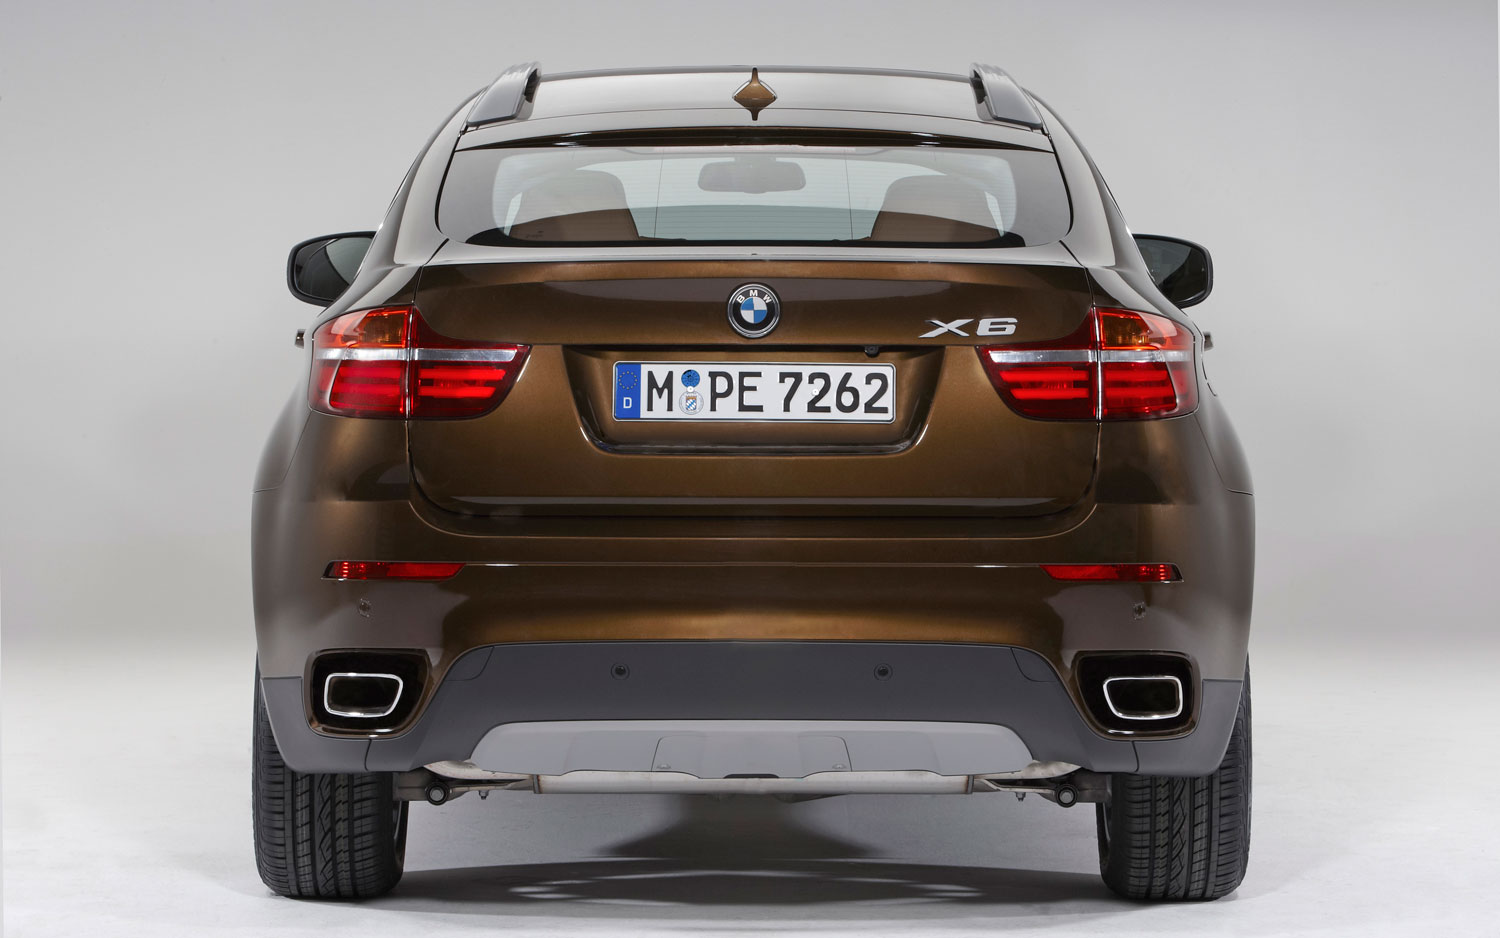 BMW Updates 2013 BMW X6, M Performance Package Added